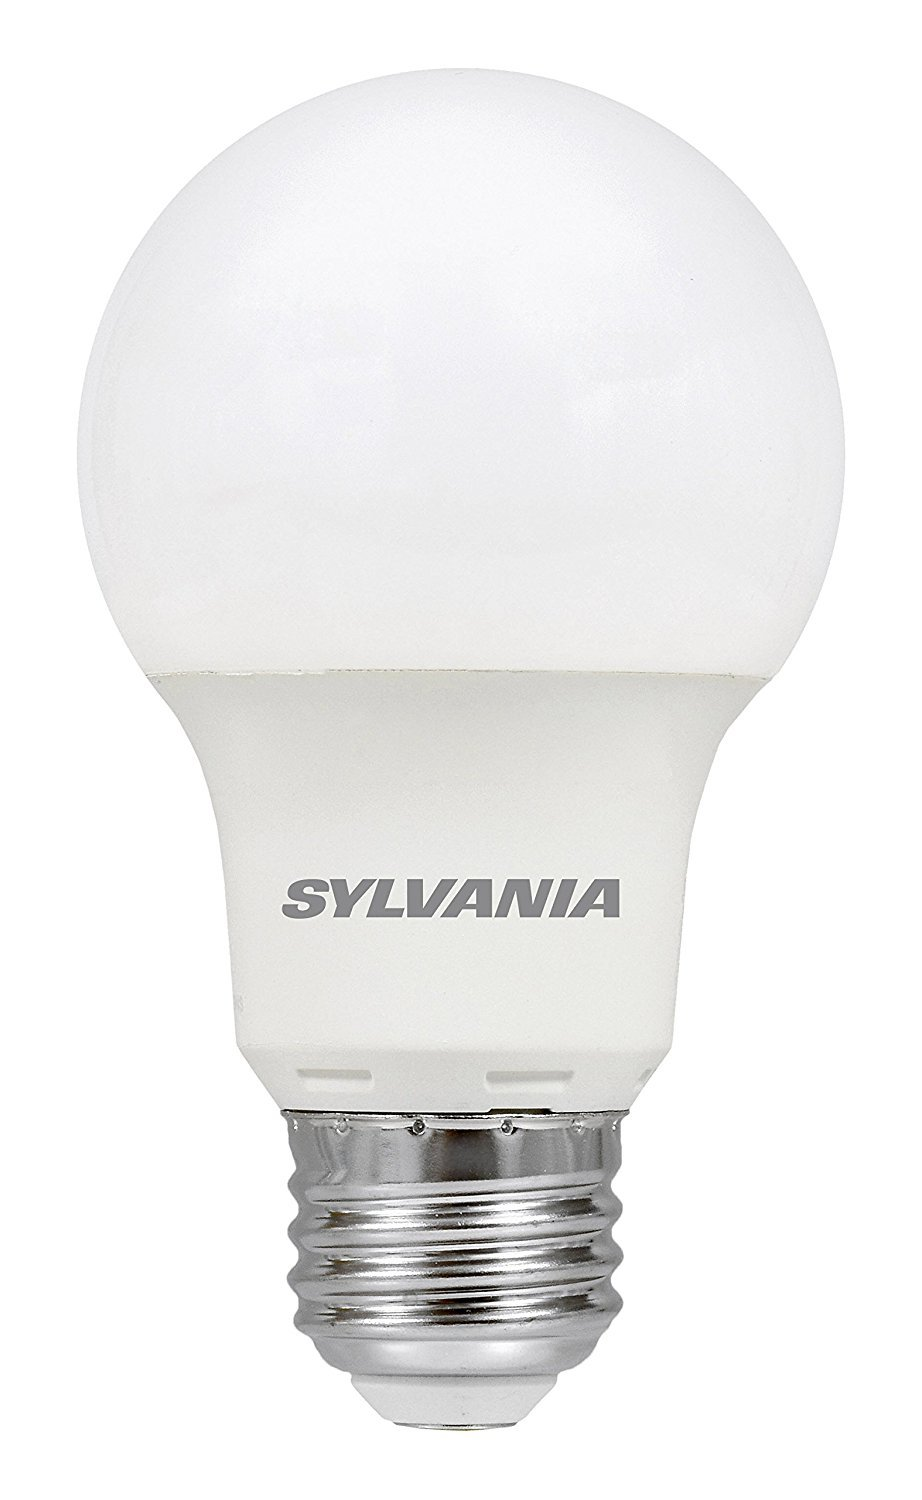 SYLVANIA, 40W Equivalent, LED Light Bulb, A19 Lamp, 2 Pack, Daylight, Energy Saving & Longer Life, Value Line, Medium Base, Efficient 6W, 5000K